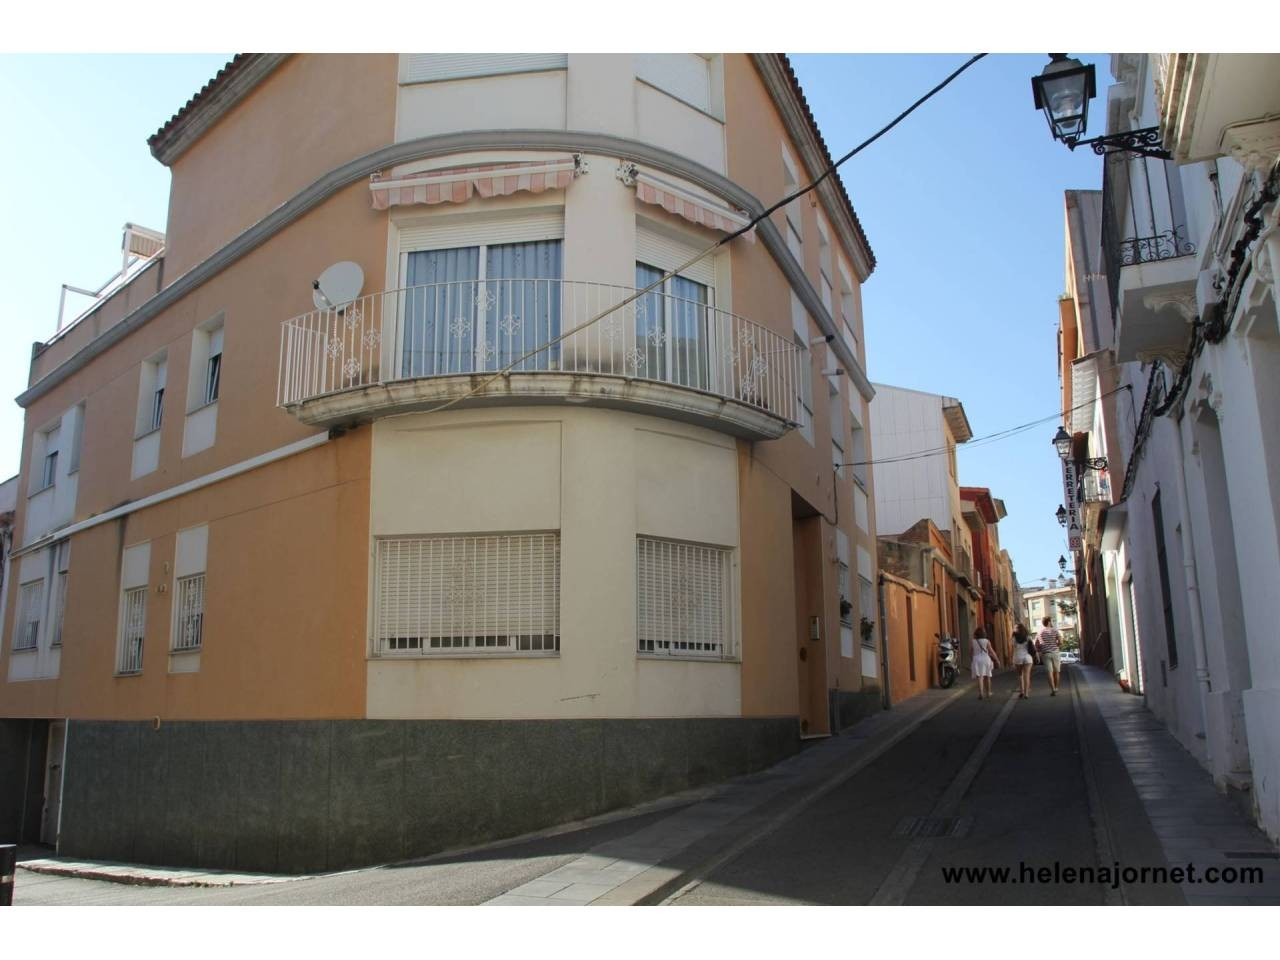 Flat with parking and lift located in town center. - 321